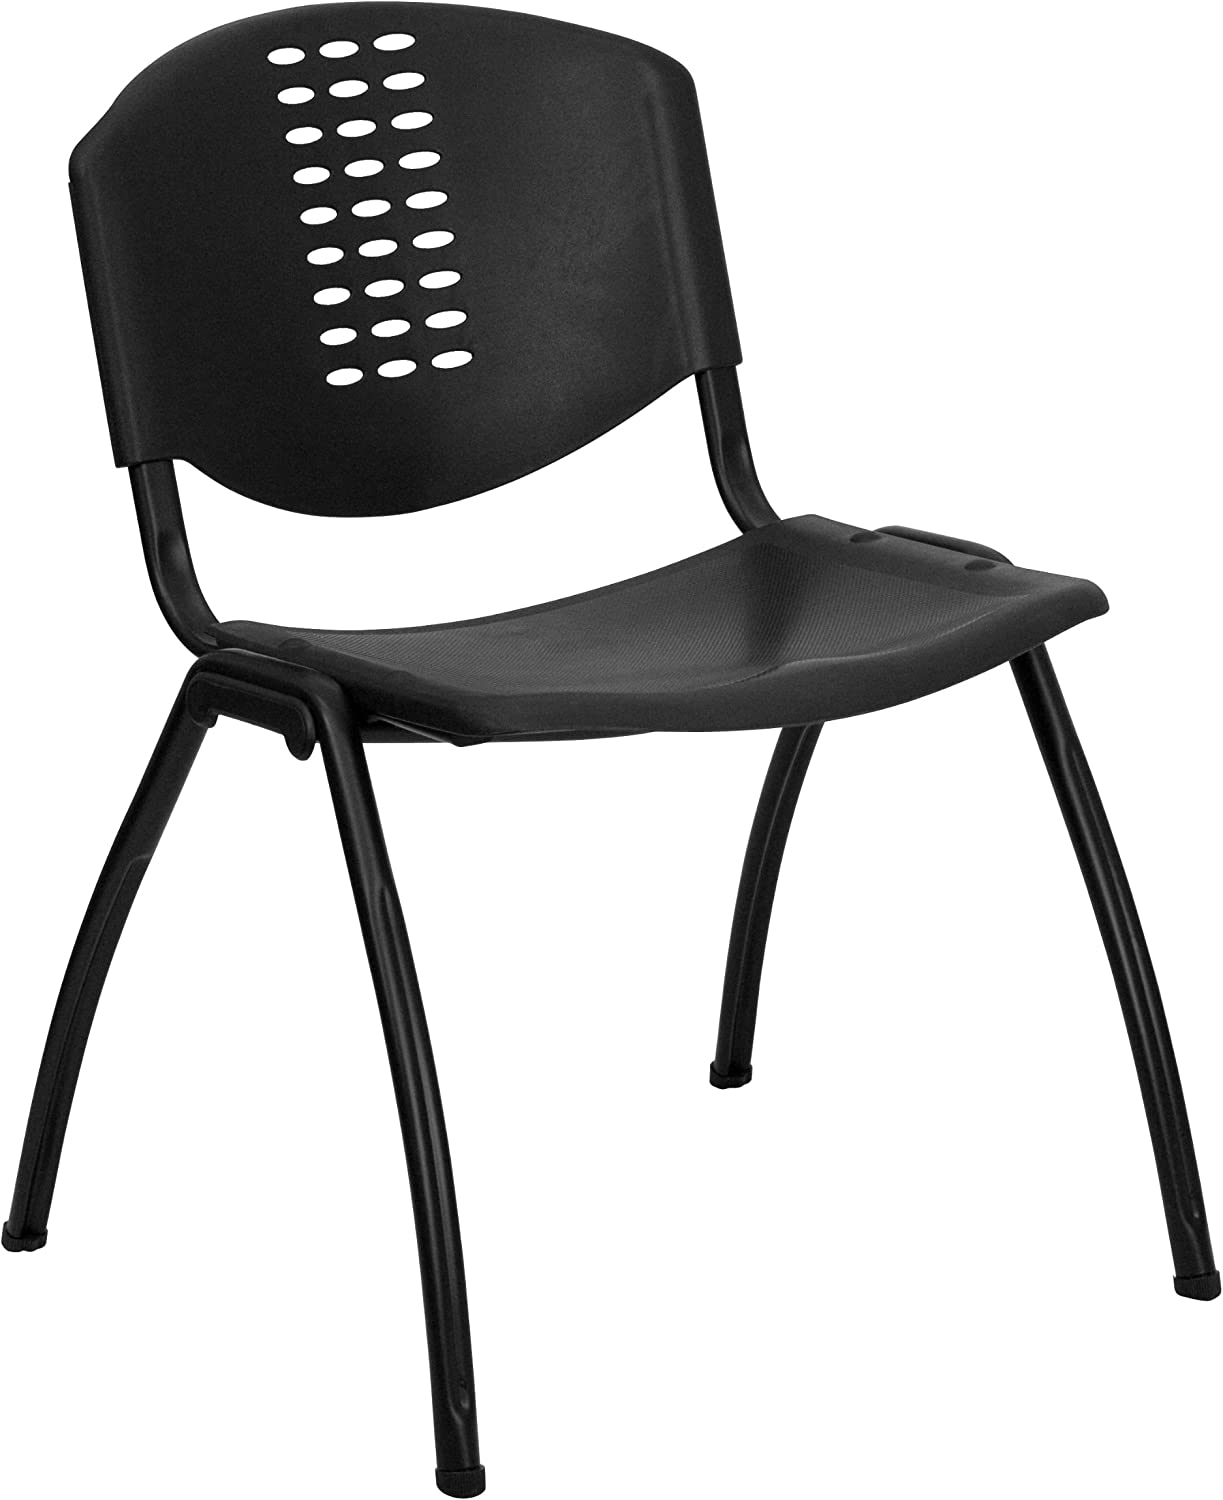 Flash Furniture HERCULES Series 880 lb. Capacity Black Plastic Stack Chair with Oval Cutout Back and Black Frame: Furniture & Decor